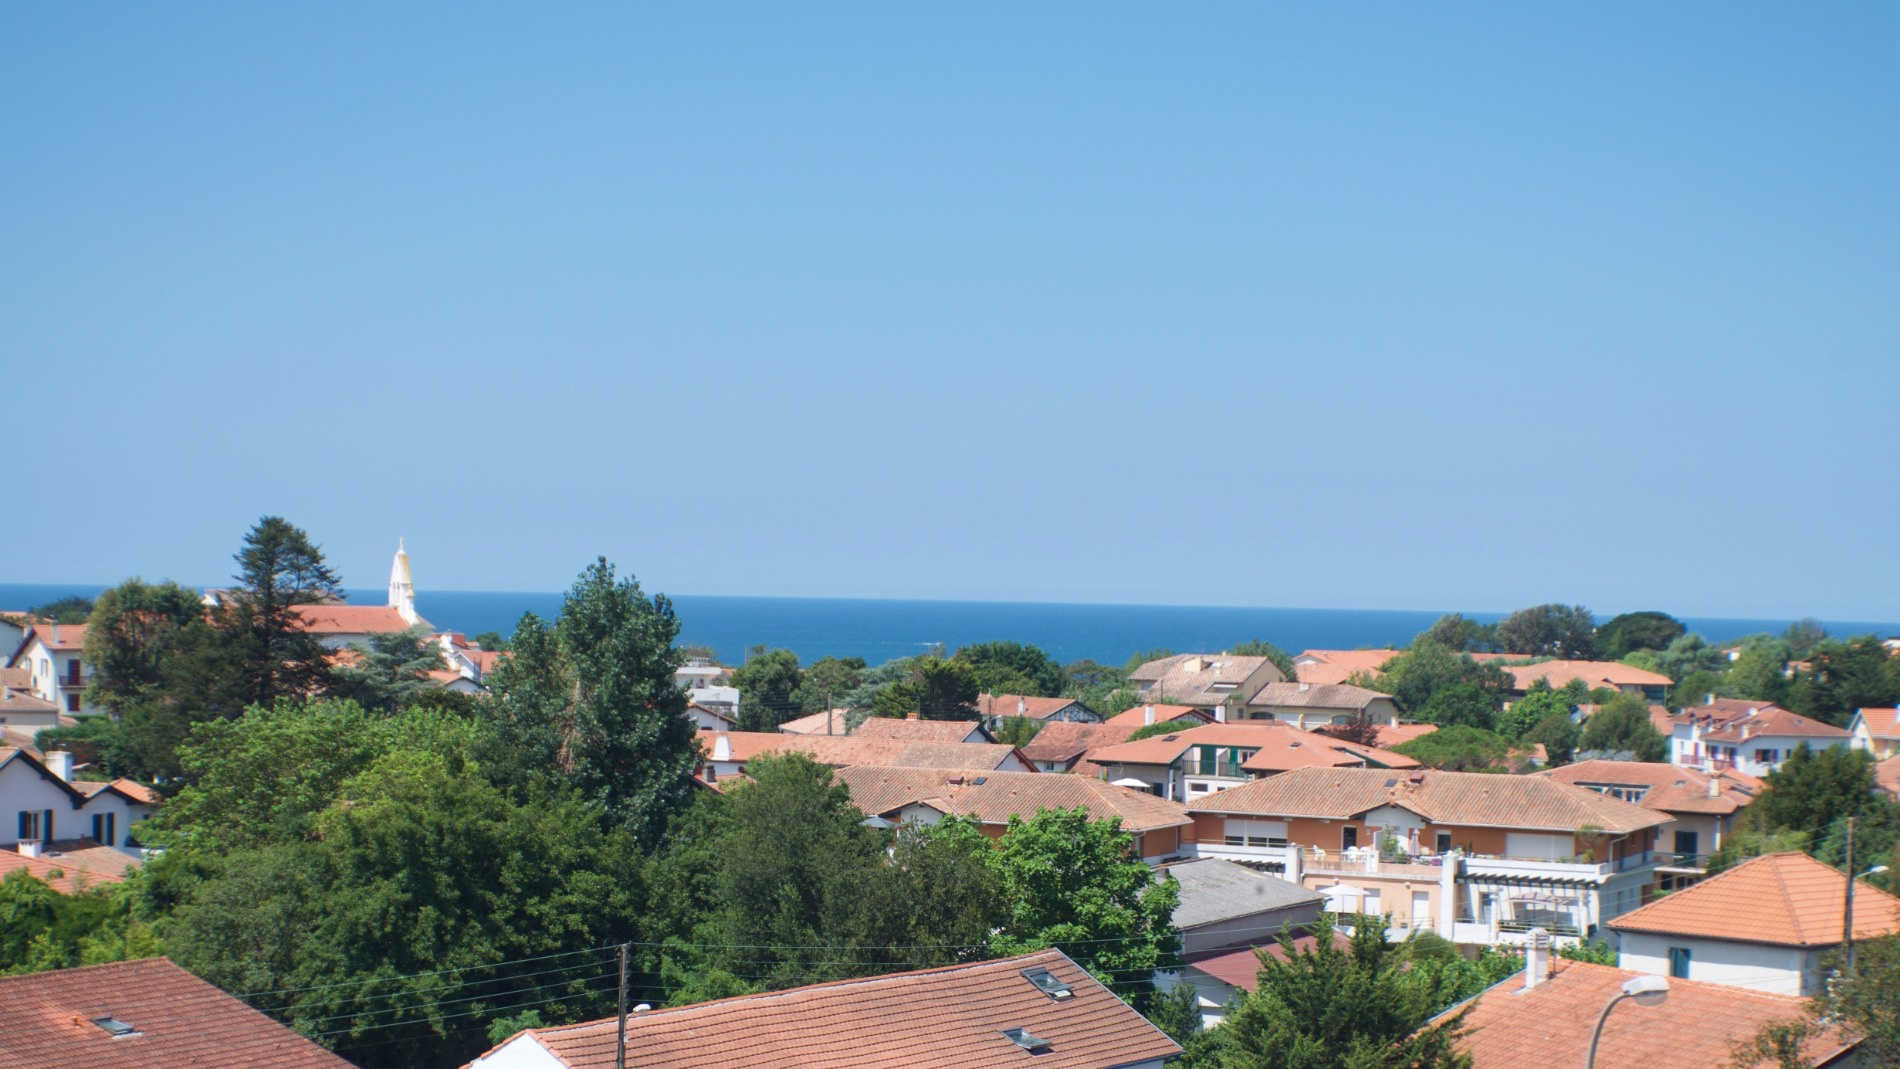 Agence immobili re biarritz au pays basque immobiliere for Agence immobiliere 5 cantons anglet